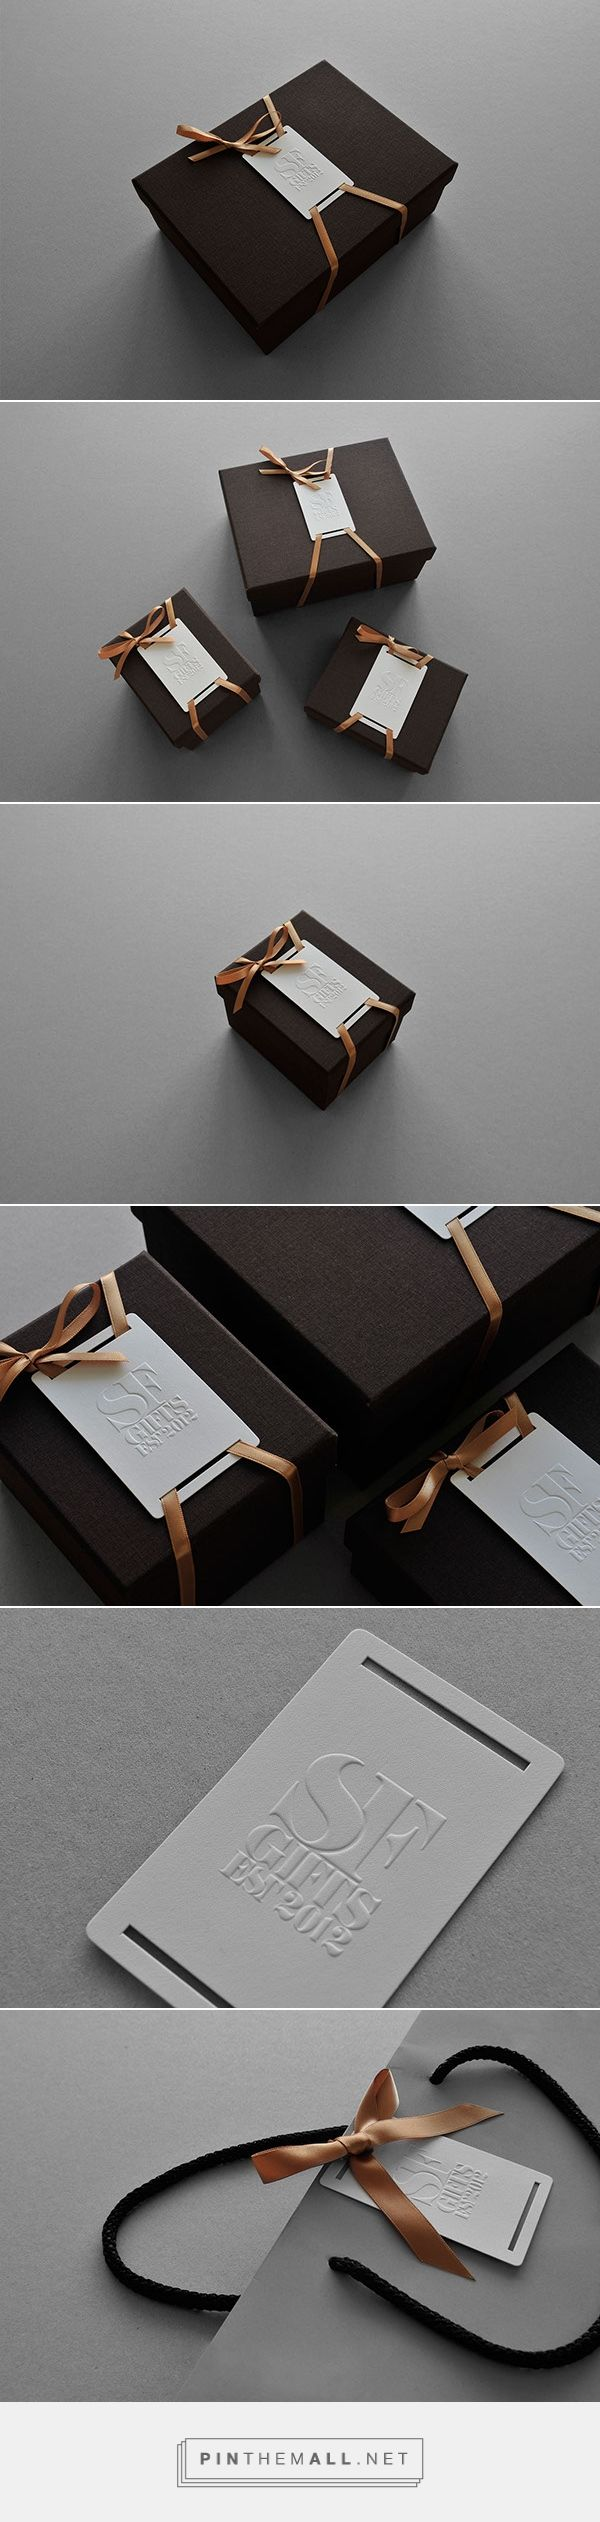 SF Gifts on Behance - contemporary branding and packaging design, white embossed/letterpress logo, dark brown box